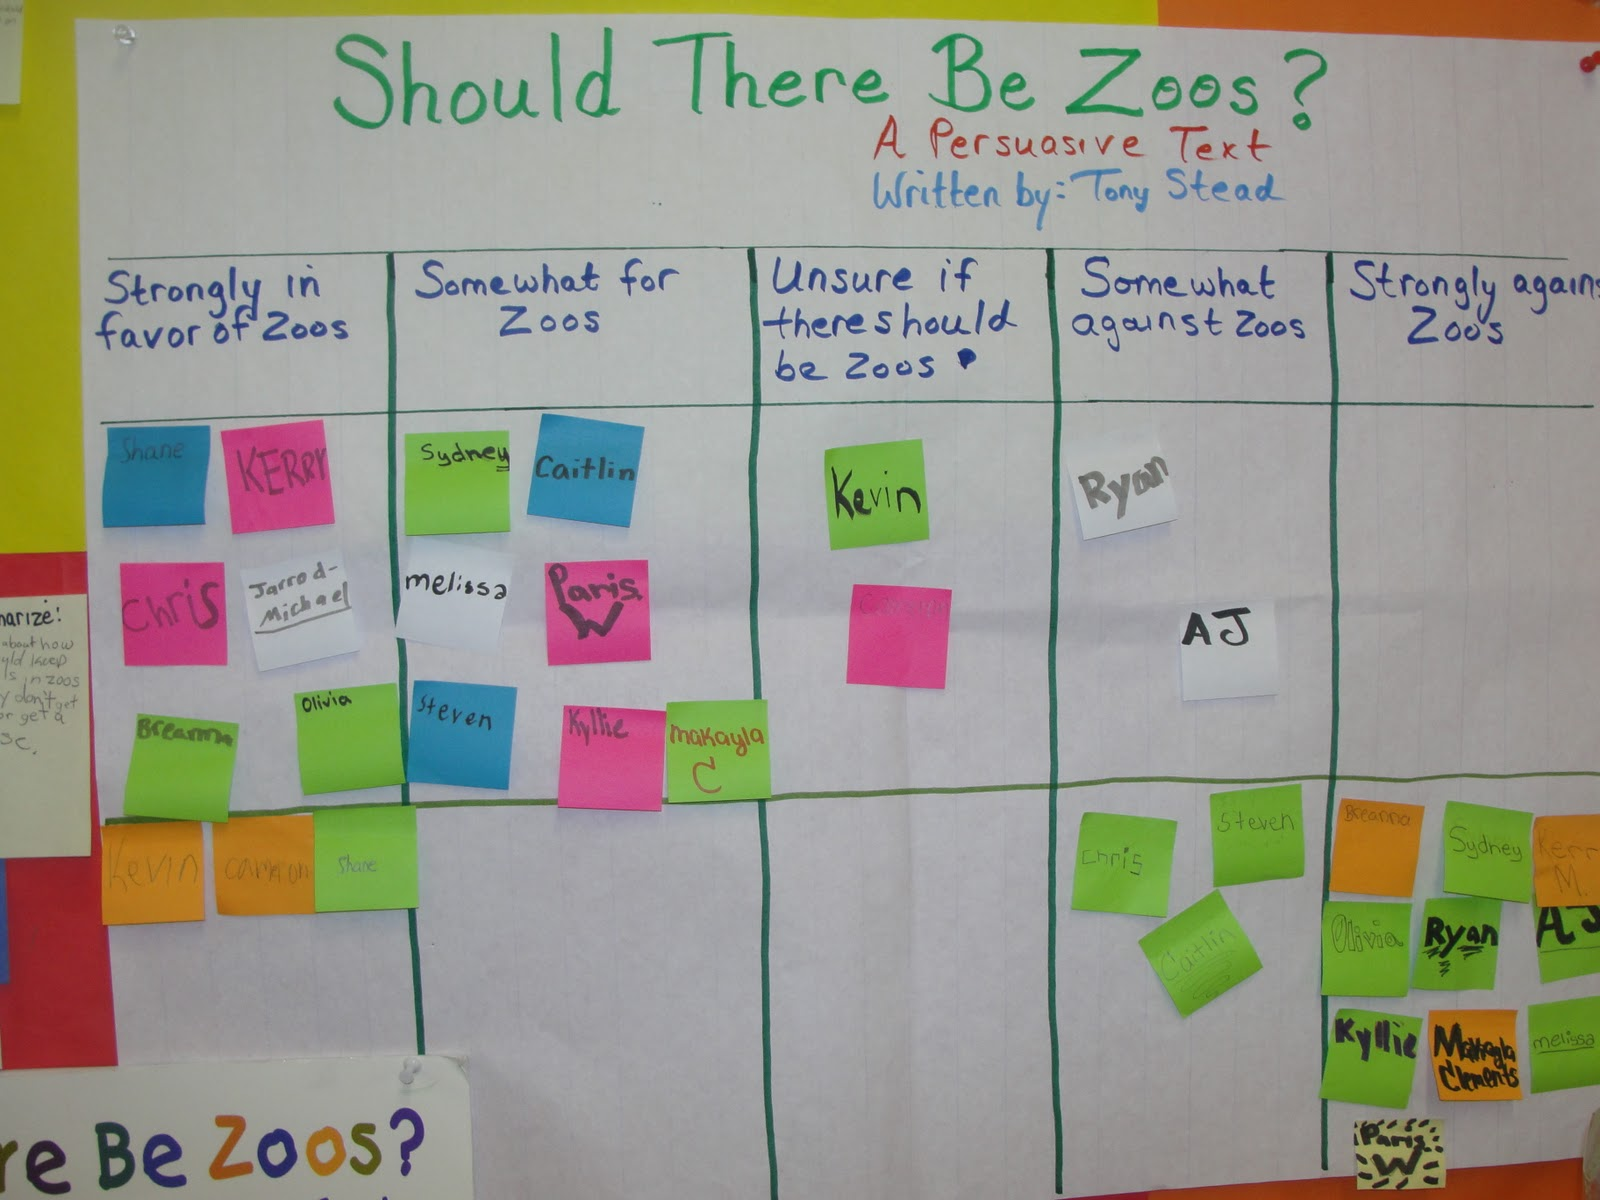 pros and cons of zoos essay Free essays on zoos cons get help with your writing 1 through 30.